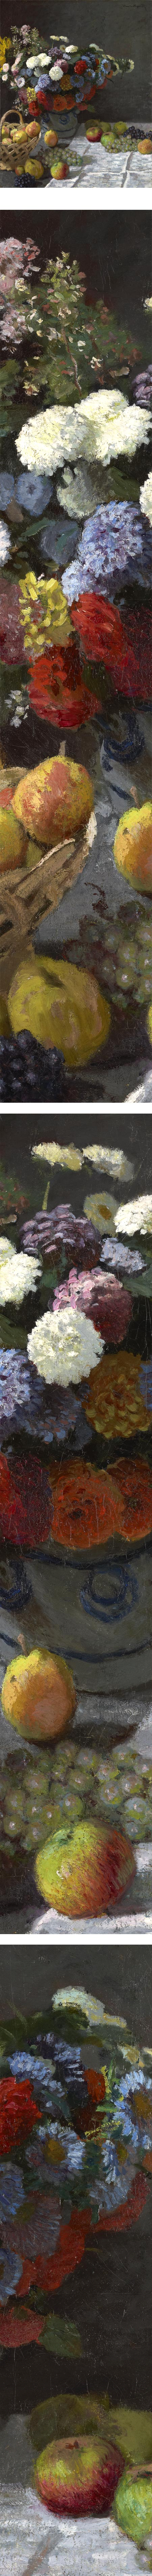 Still Life with Flowers and Fruit, Claude Monet